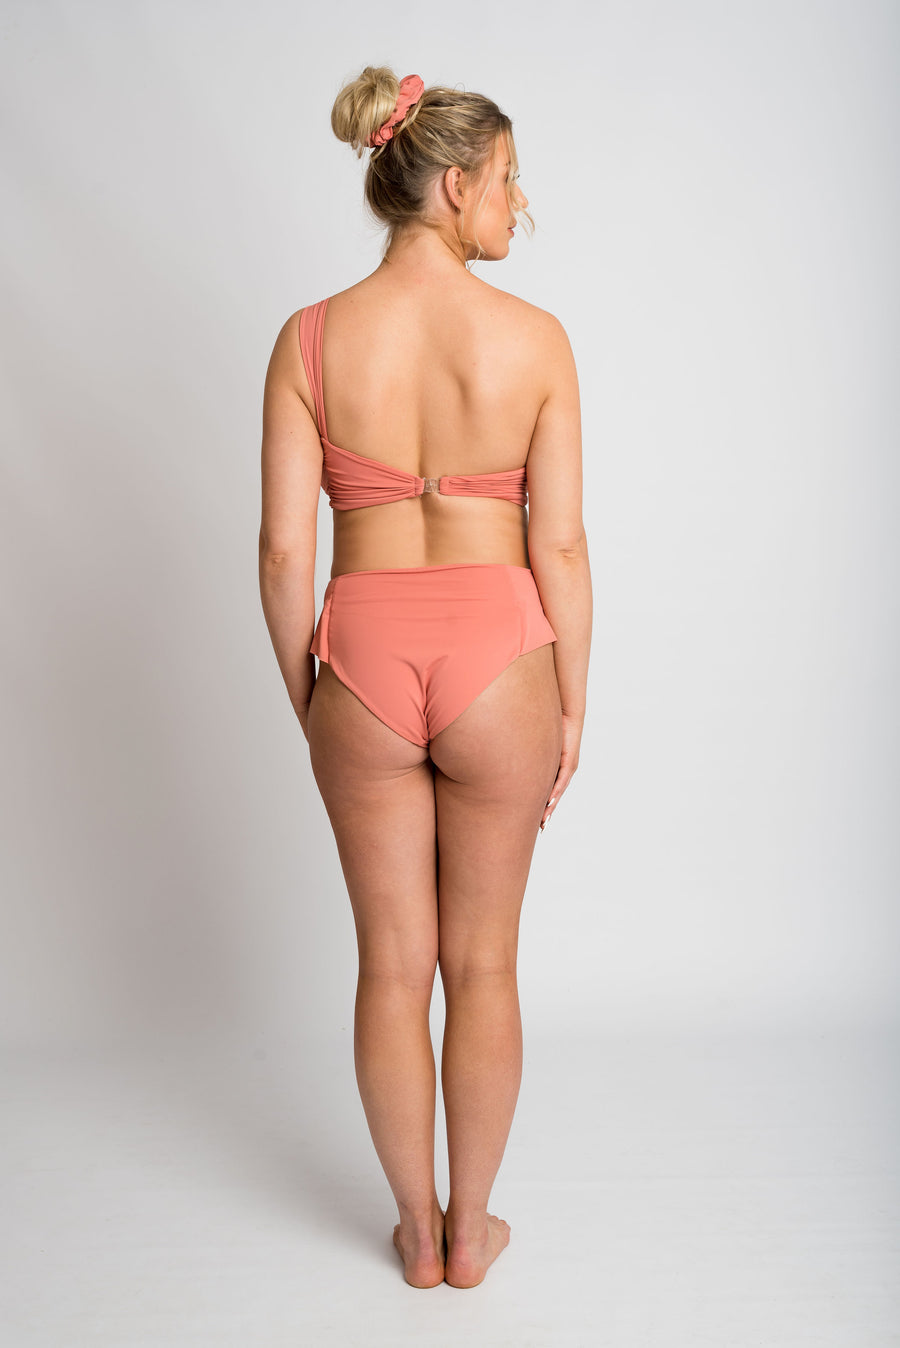 Ethical and sustainable swimwear for women xxs to plus size, recycled ECONYL cute frill bikini bottom ethically made in Australia.